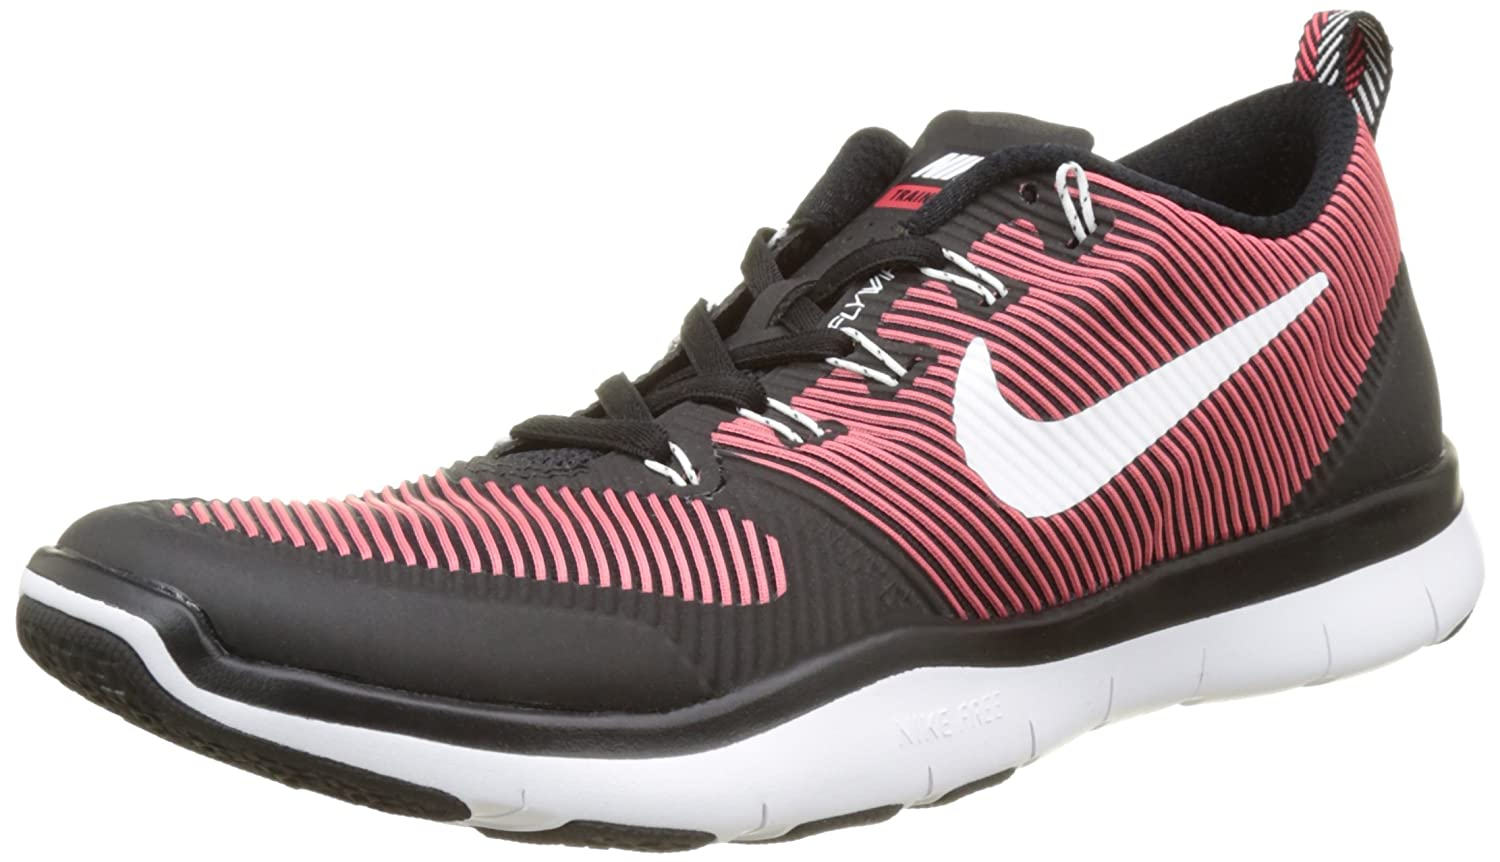 NIKE Men's Free Train Versatility Running Shoes B019HDW5AI 9.5 D(M) US|Red